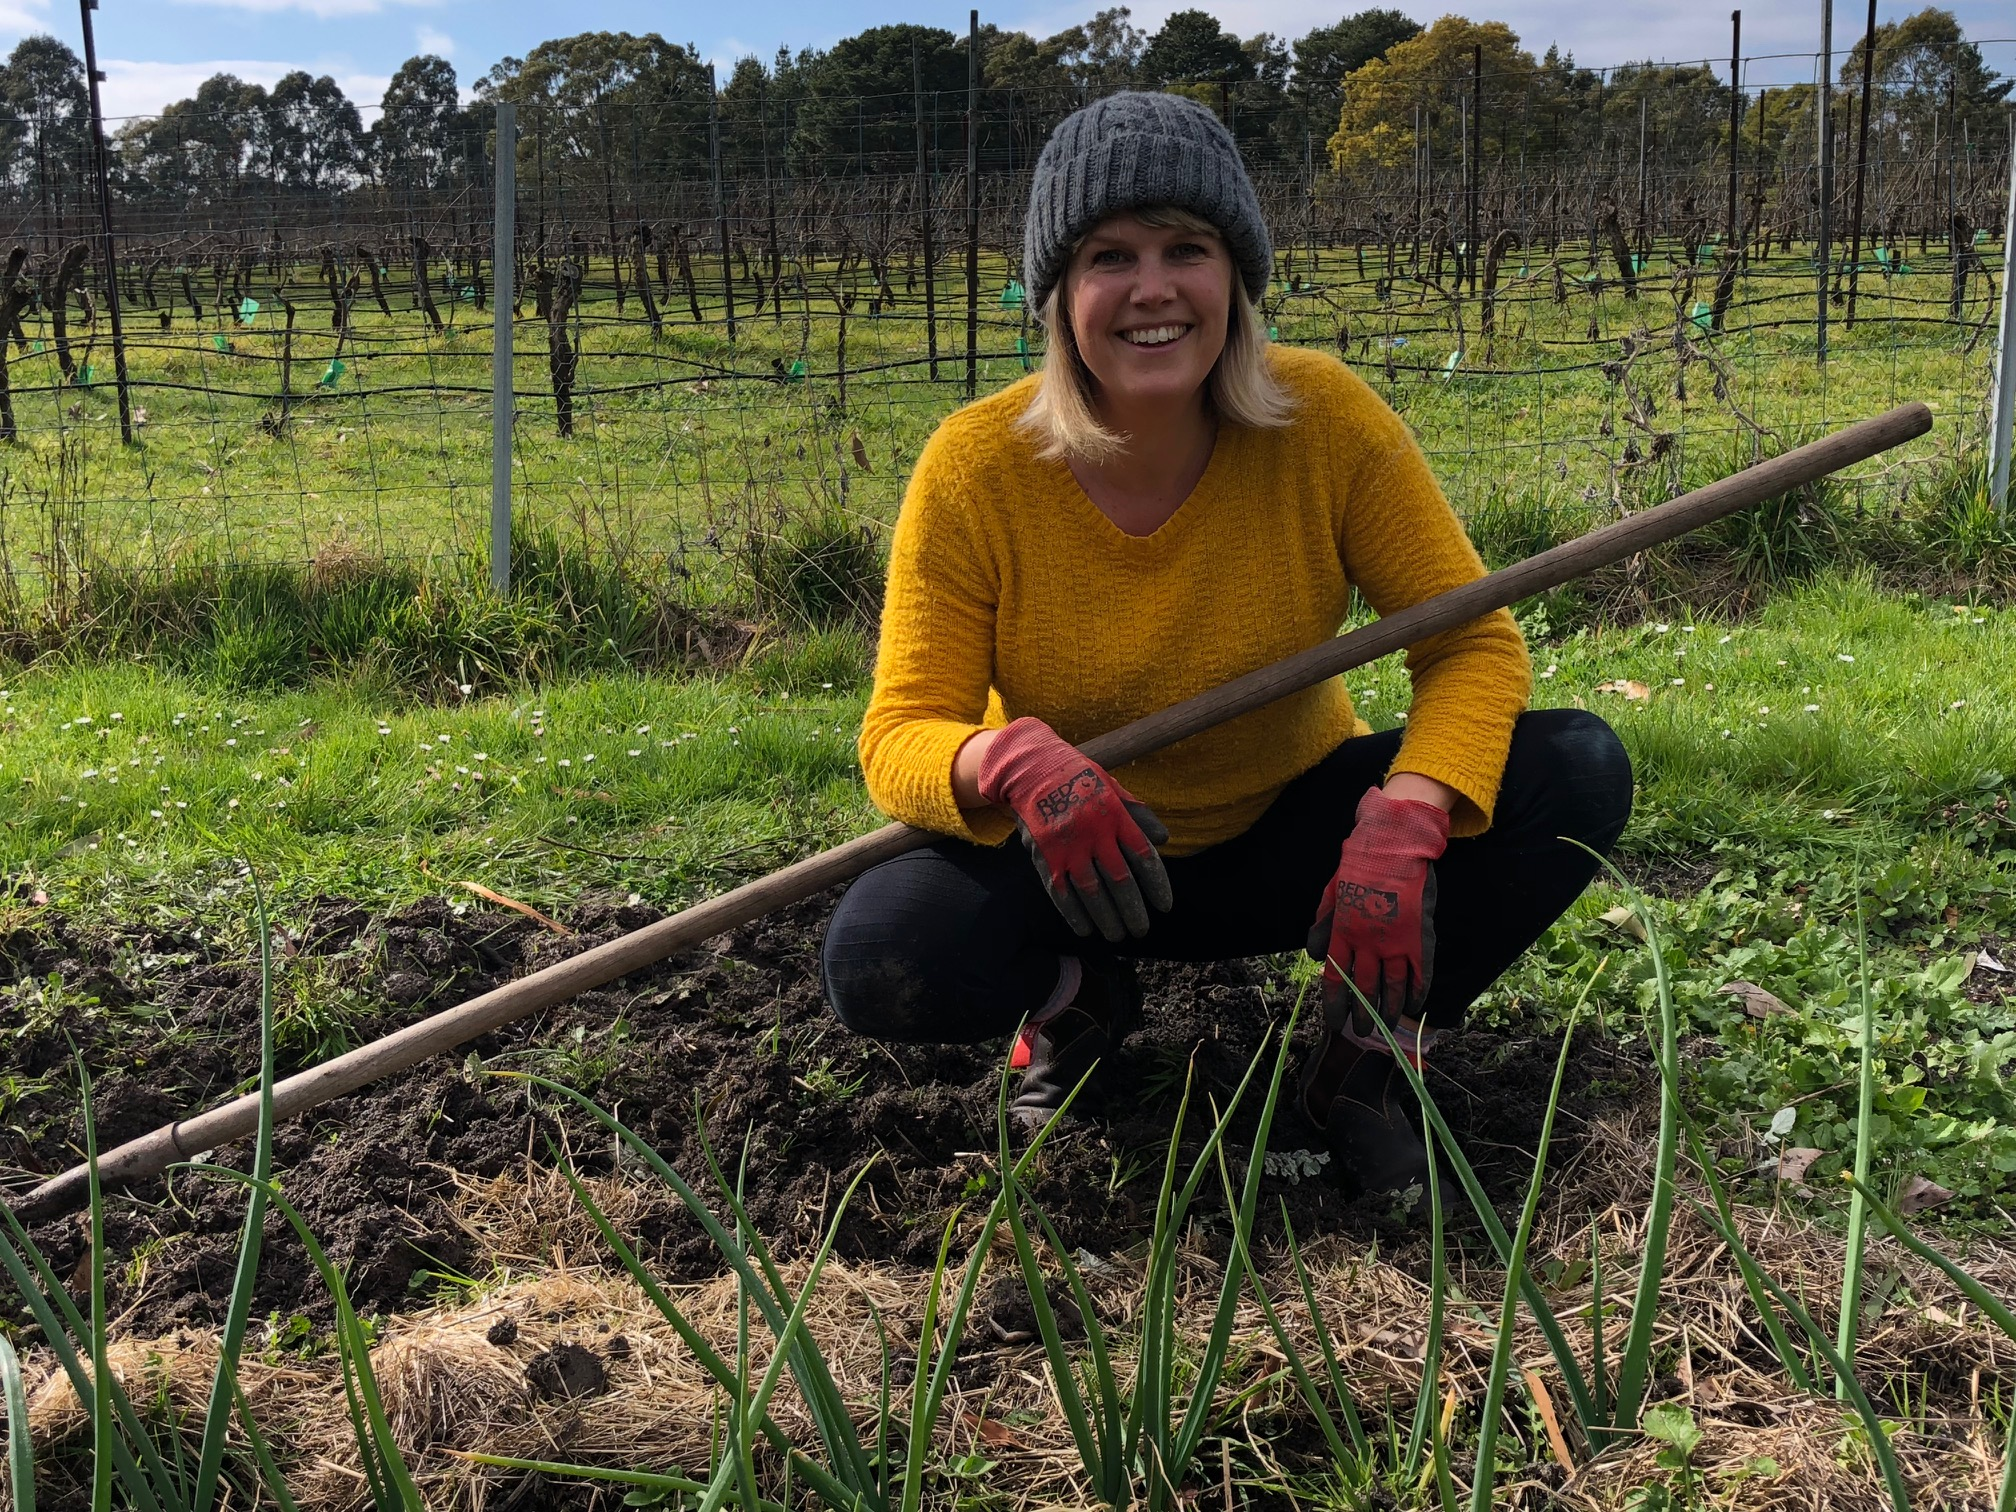 But Life On The Wine Farm Suits Me From My Hand Knitted Beanie Thanks Mum To Steel Capped Work Boots A 40th Birthday Present